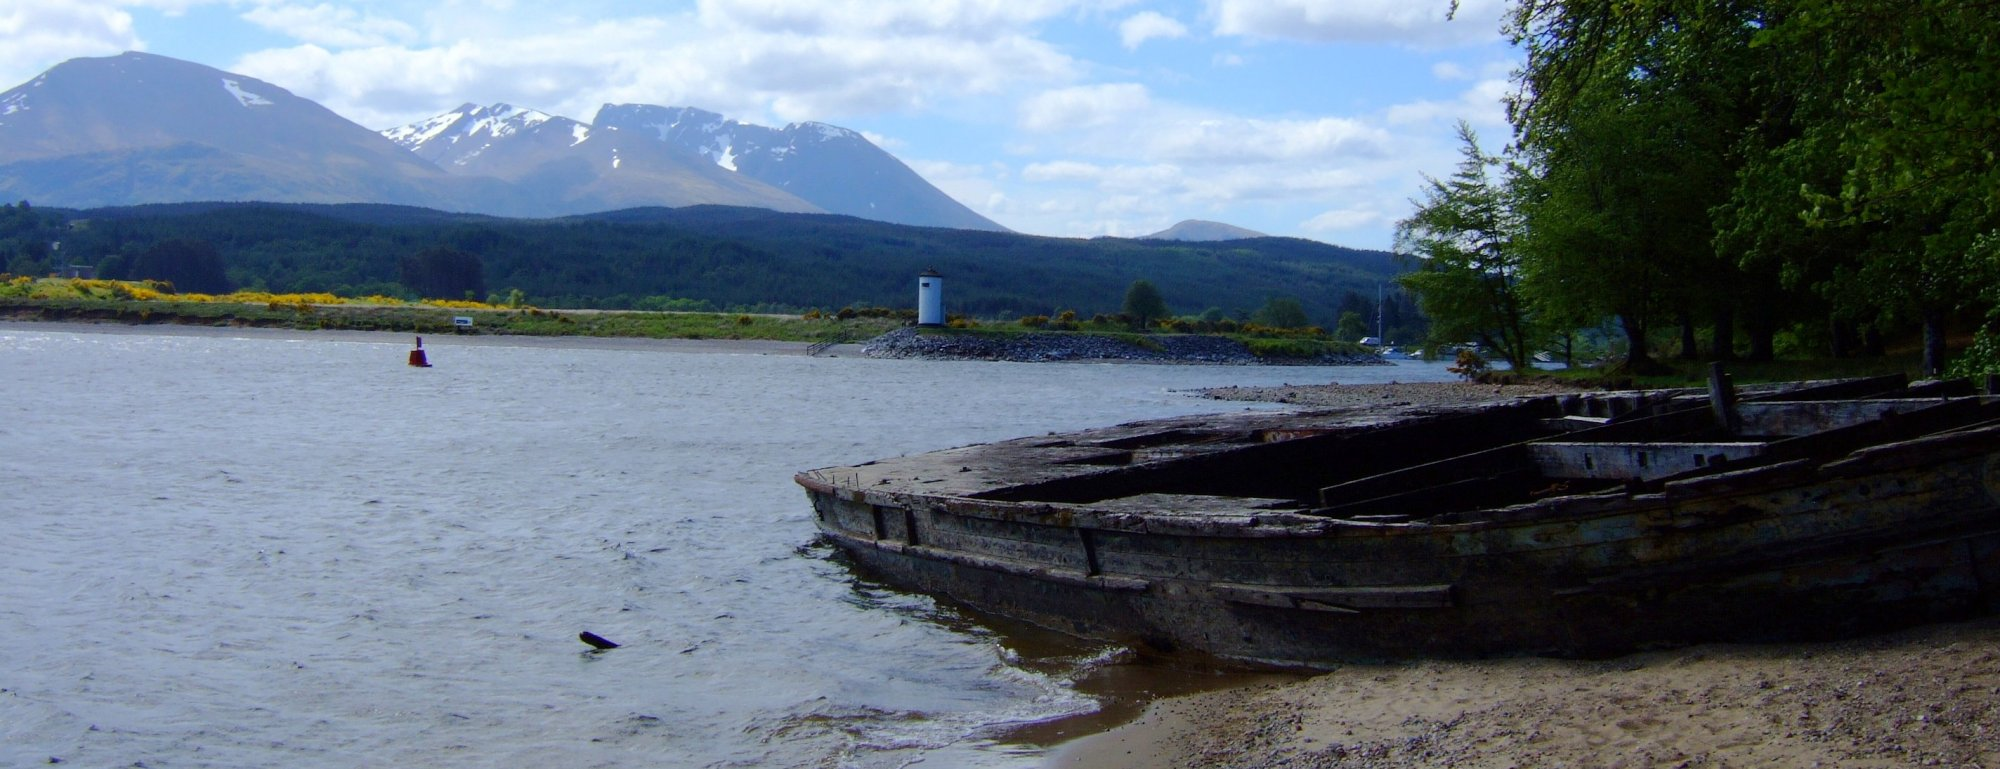 From left to right Aonach Mor, Carn Mor Dearg and Ben Nevis, above the pepperpot lighthouse and ruined barge at Gairlochy